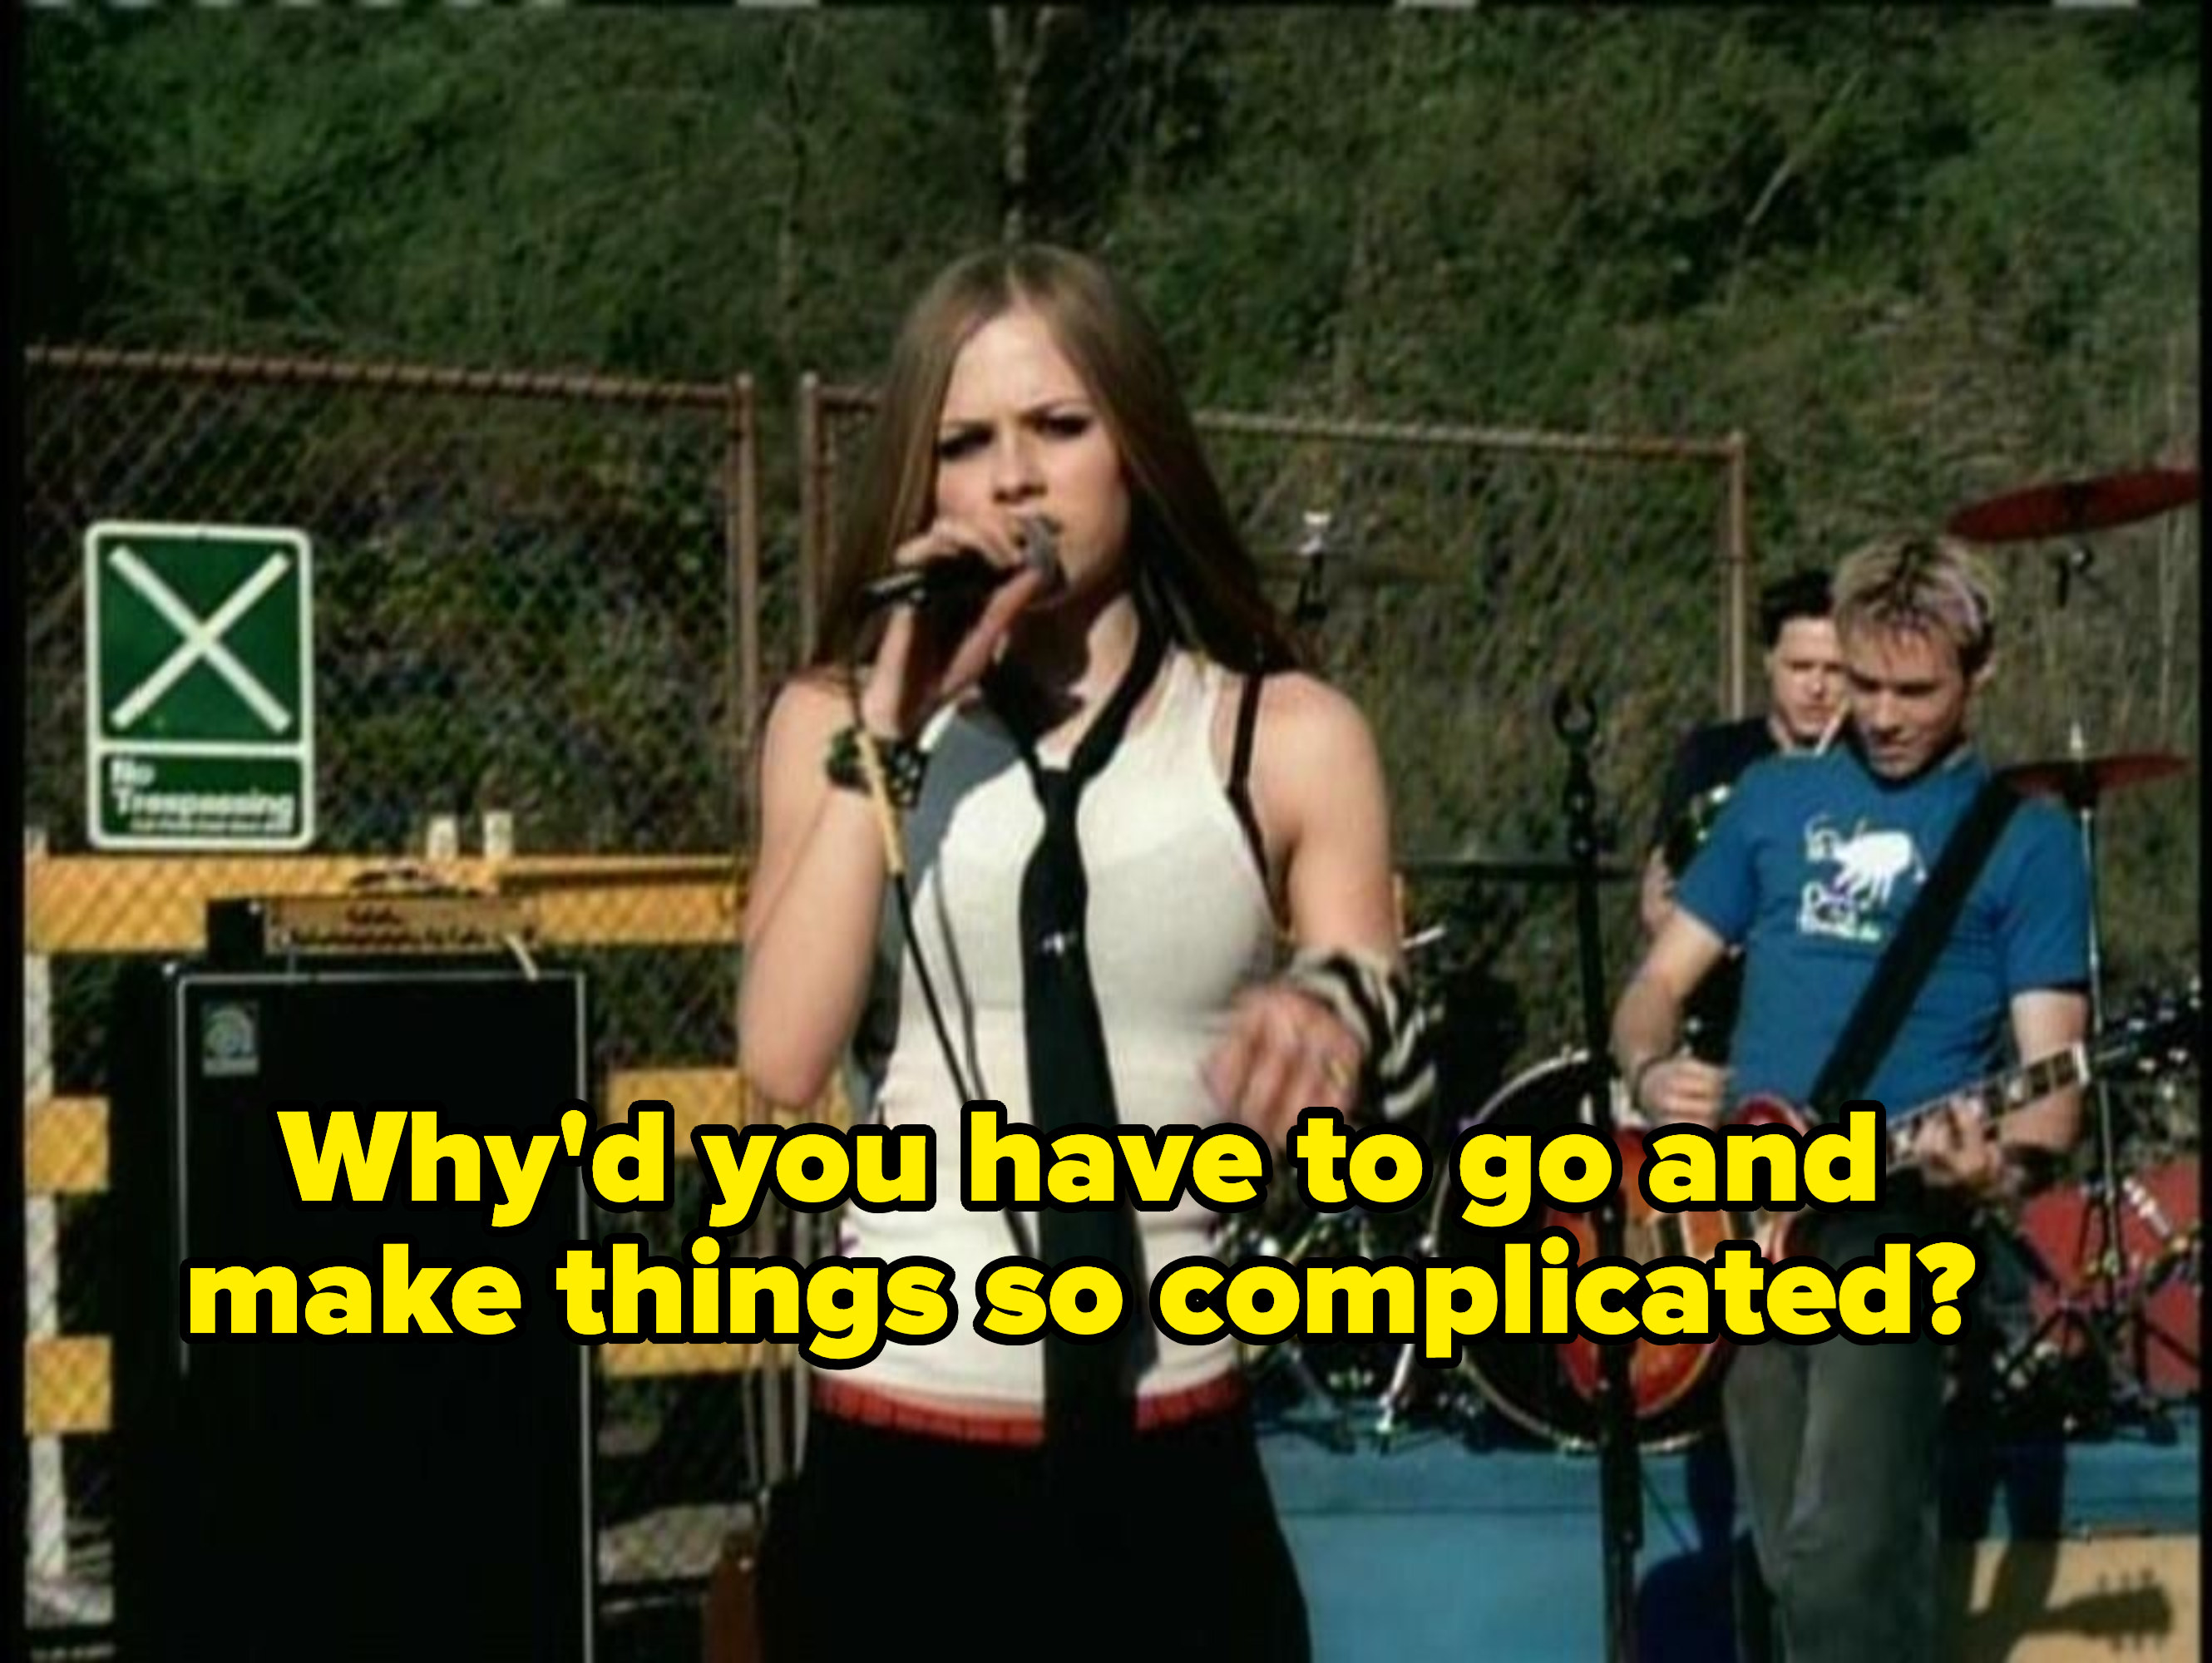 Lyrics to Avril Lavigne's Complicated: Why'd you have to go and make things so complicated?